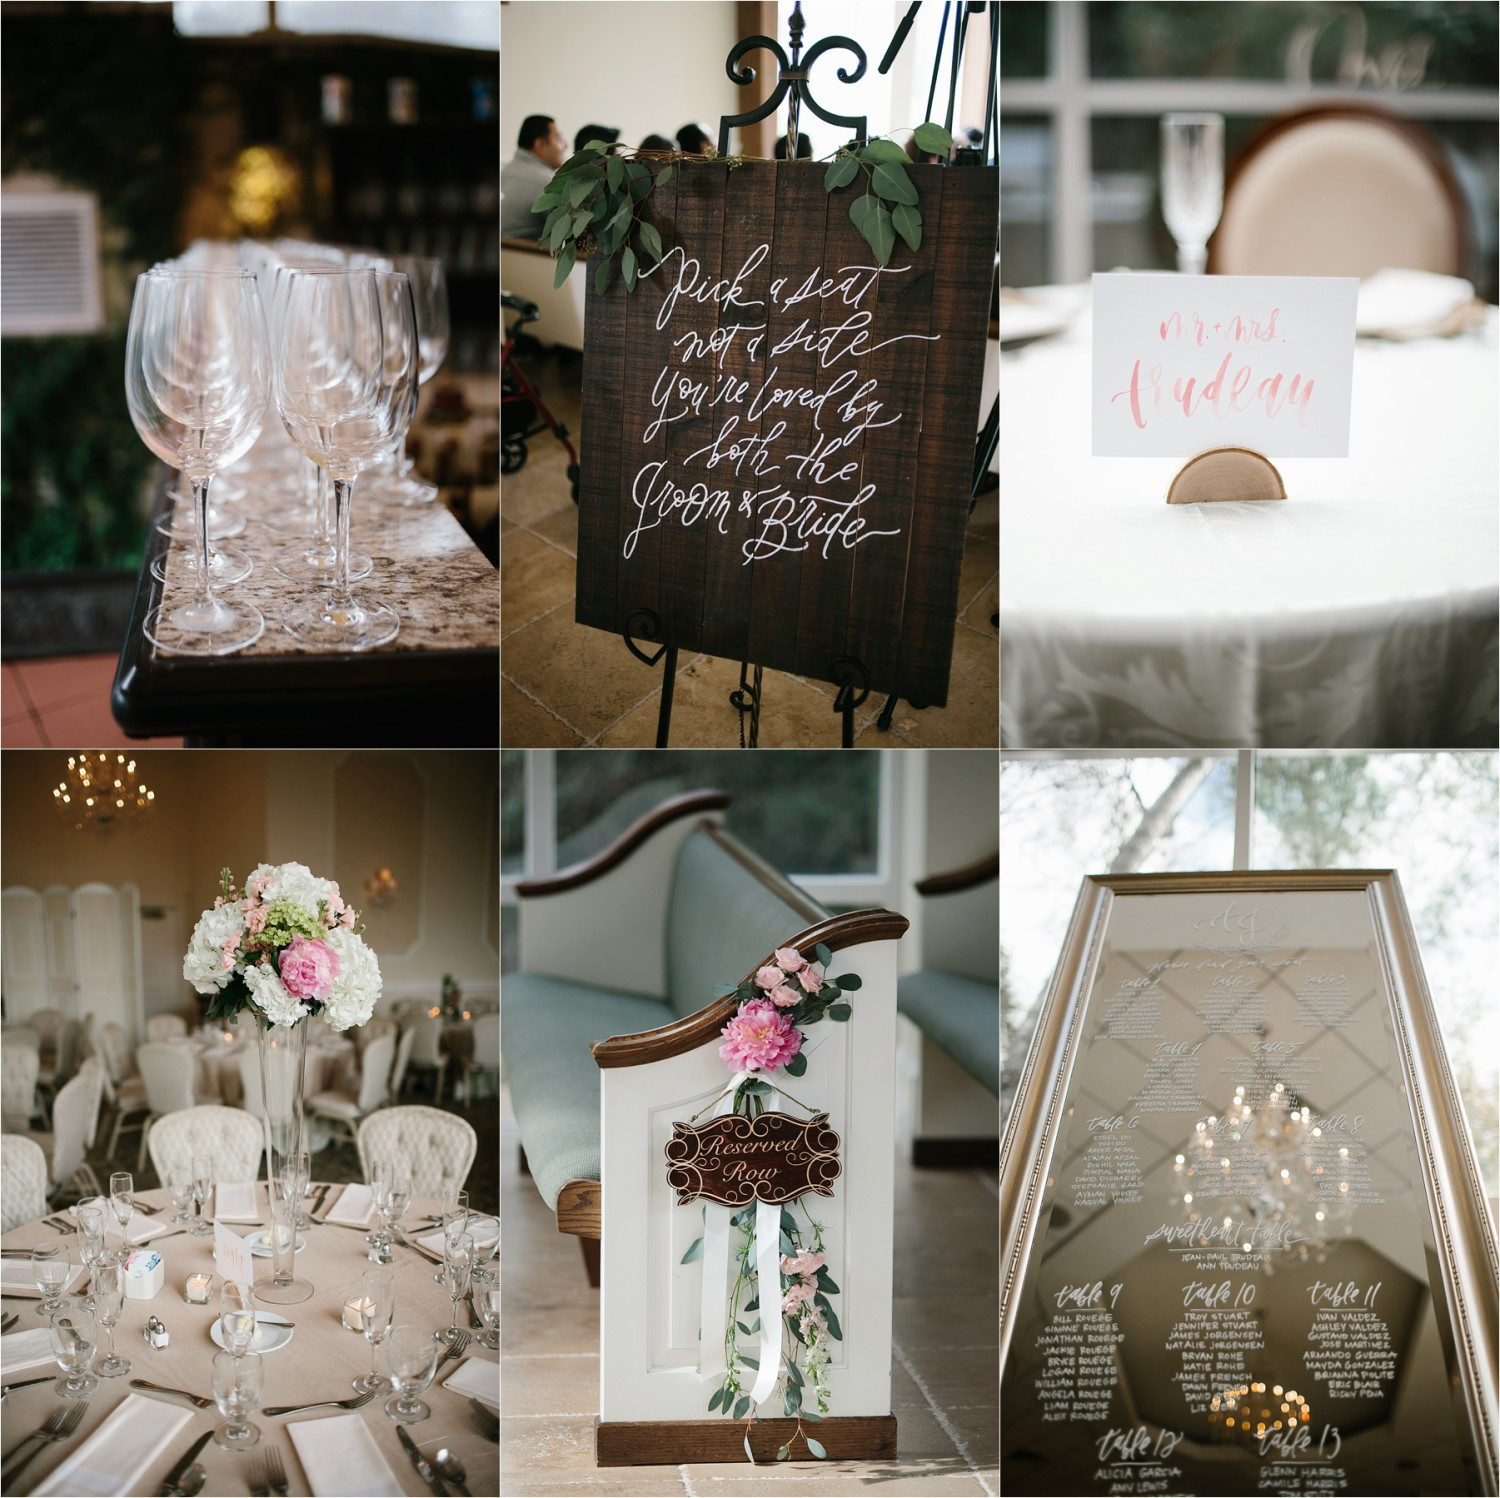 Jeanpaul + Ann __ a colorful wedding at Ashton Gardens in Houston TX by North Texas Wedding Photographer Rachel Meagan Photography _ 21